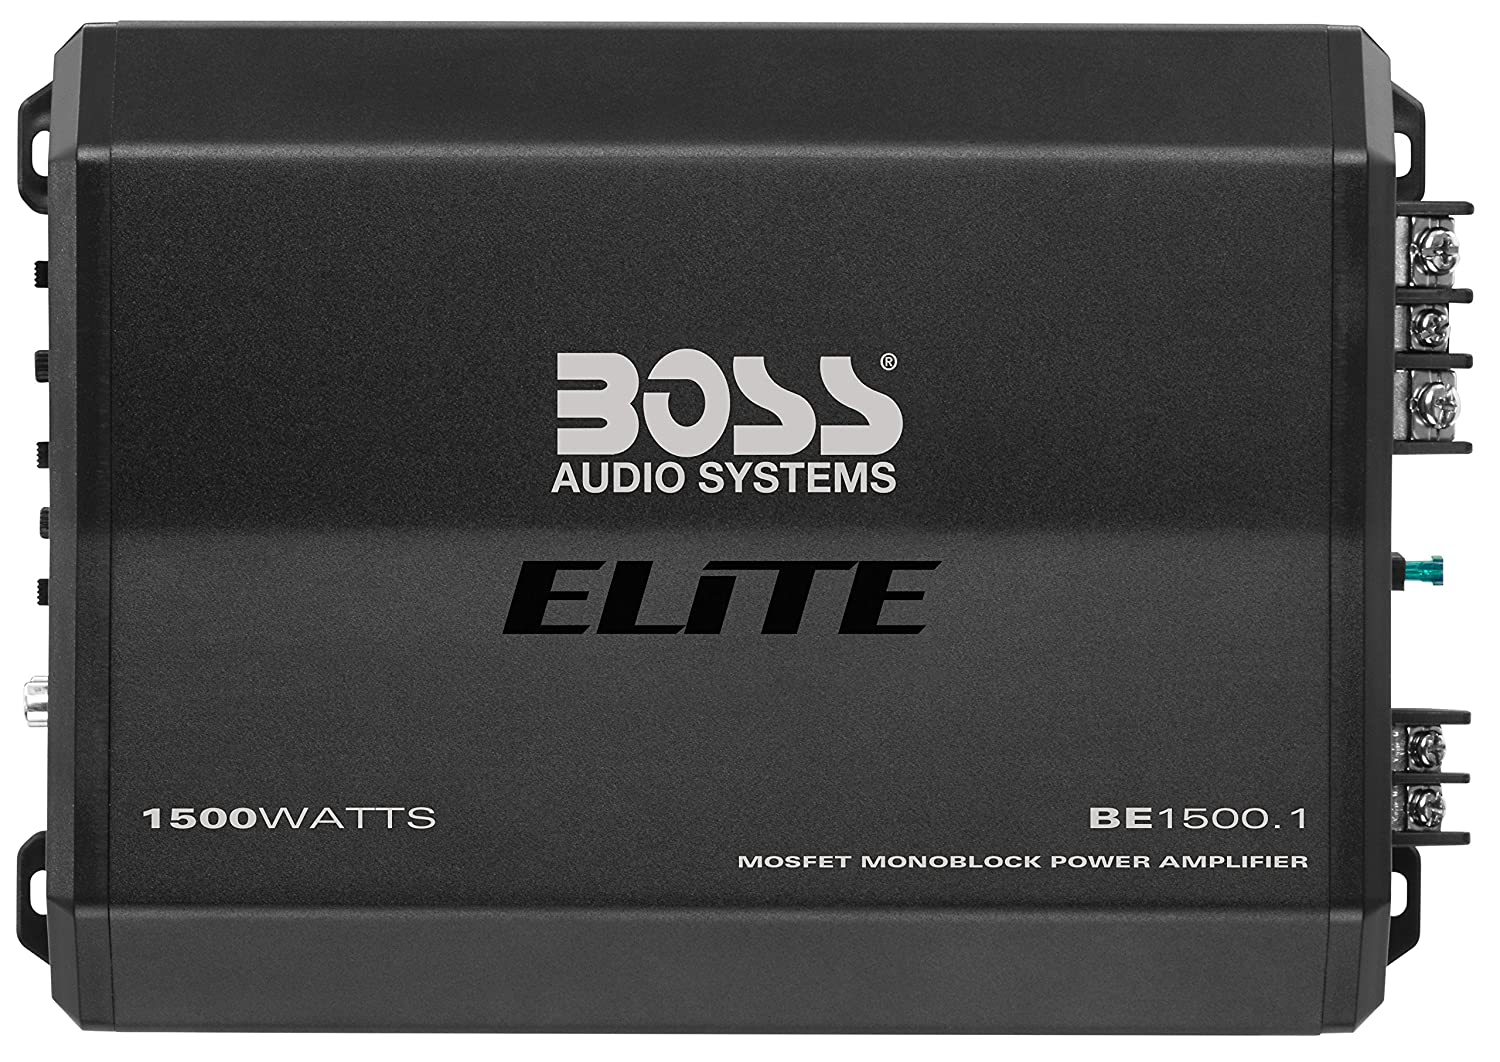 Class AB 2-8 Ohm Stable BOSS Audio Systems Elite BE1600.4 4 Channel Car Amplifier Mosfet Power Supply Bridgeable 1600 Watts Full Range